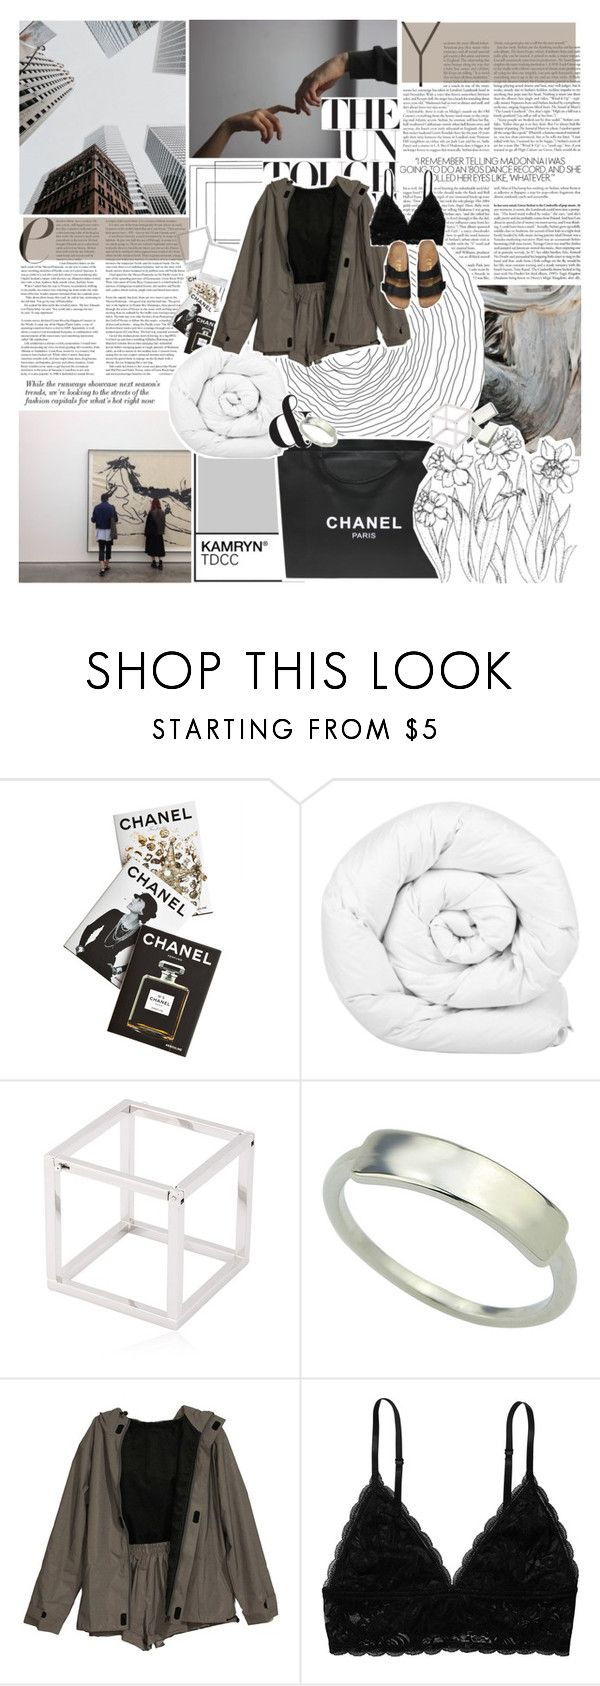 """""""perspective perception    .50"""" by drops-of-venus ❤ liked on Polyvore featuring Chanel, Assouline Publishing, Brinkhaus, Caterina Zangrando and Monki"""